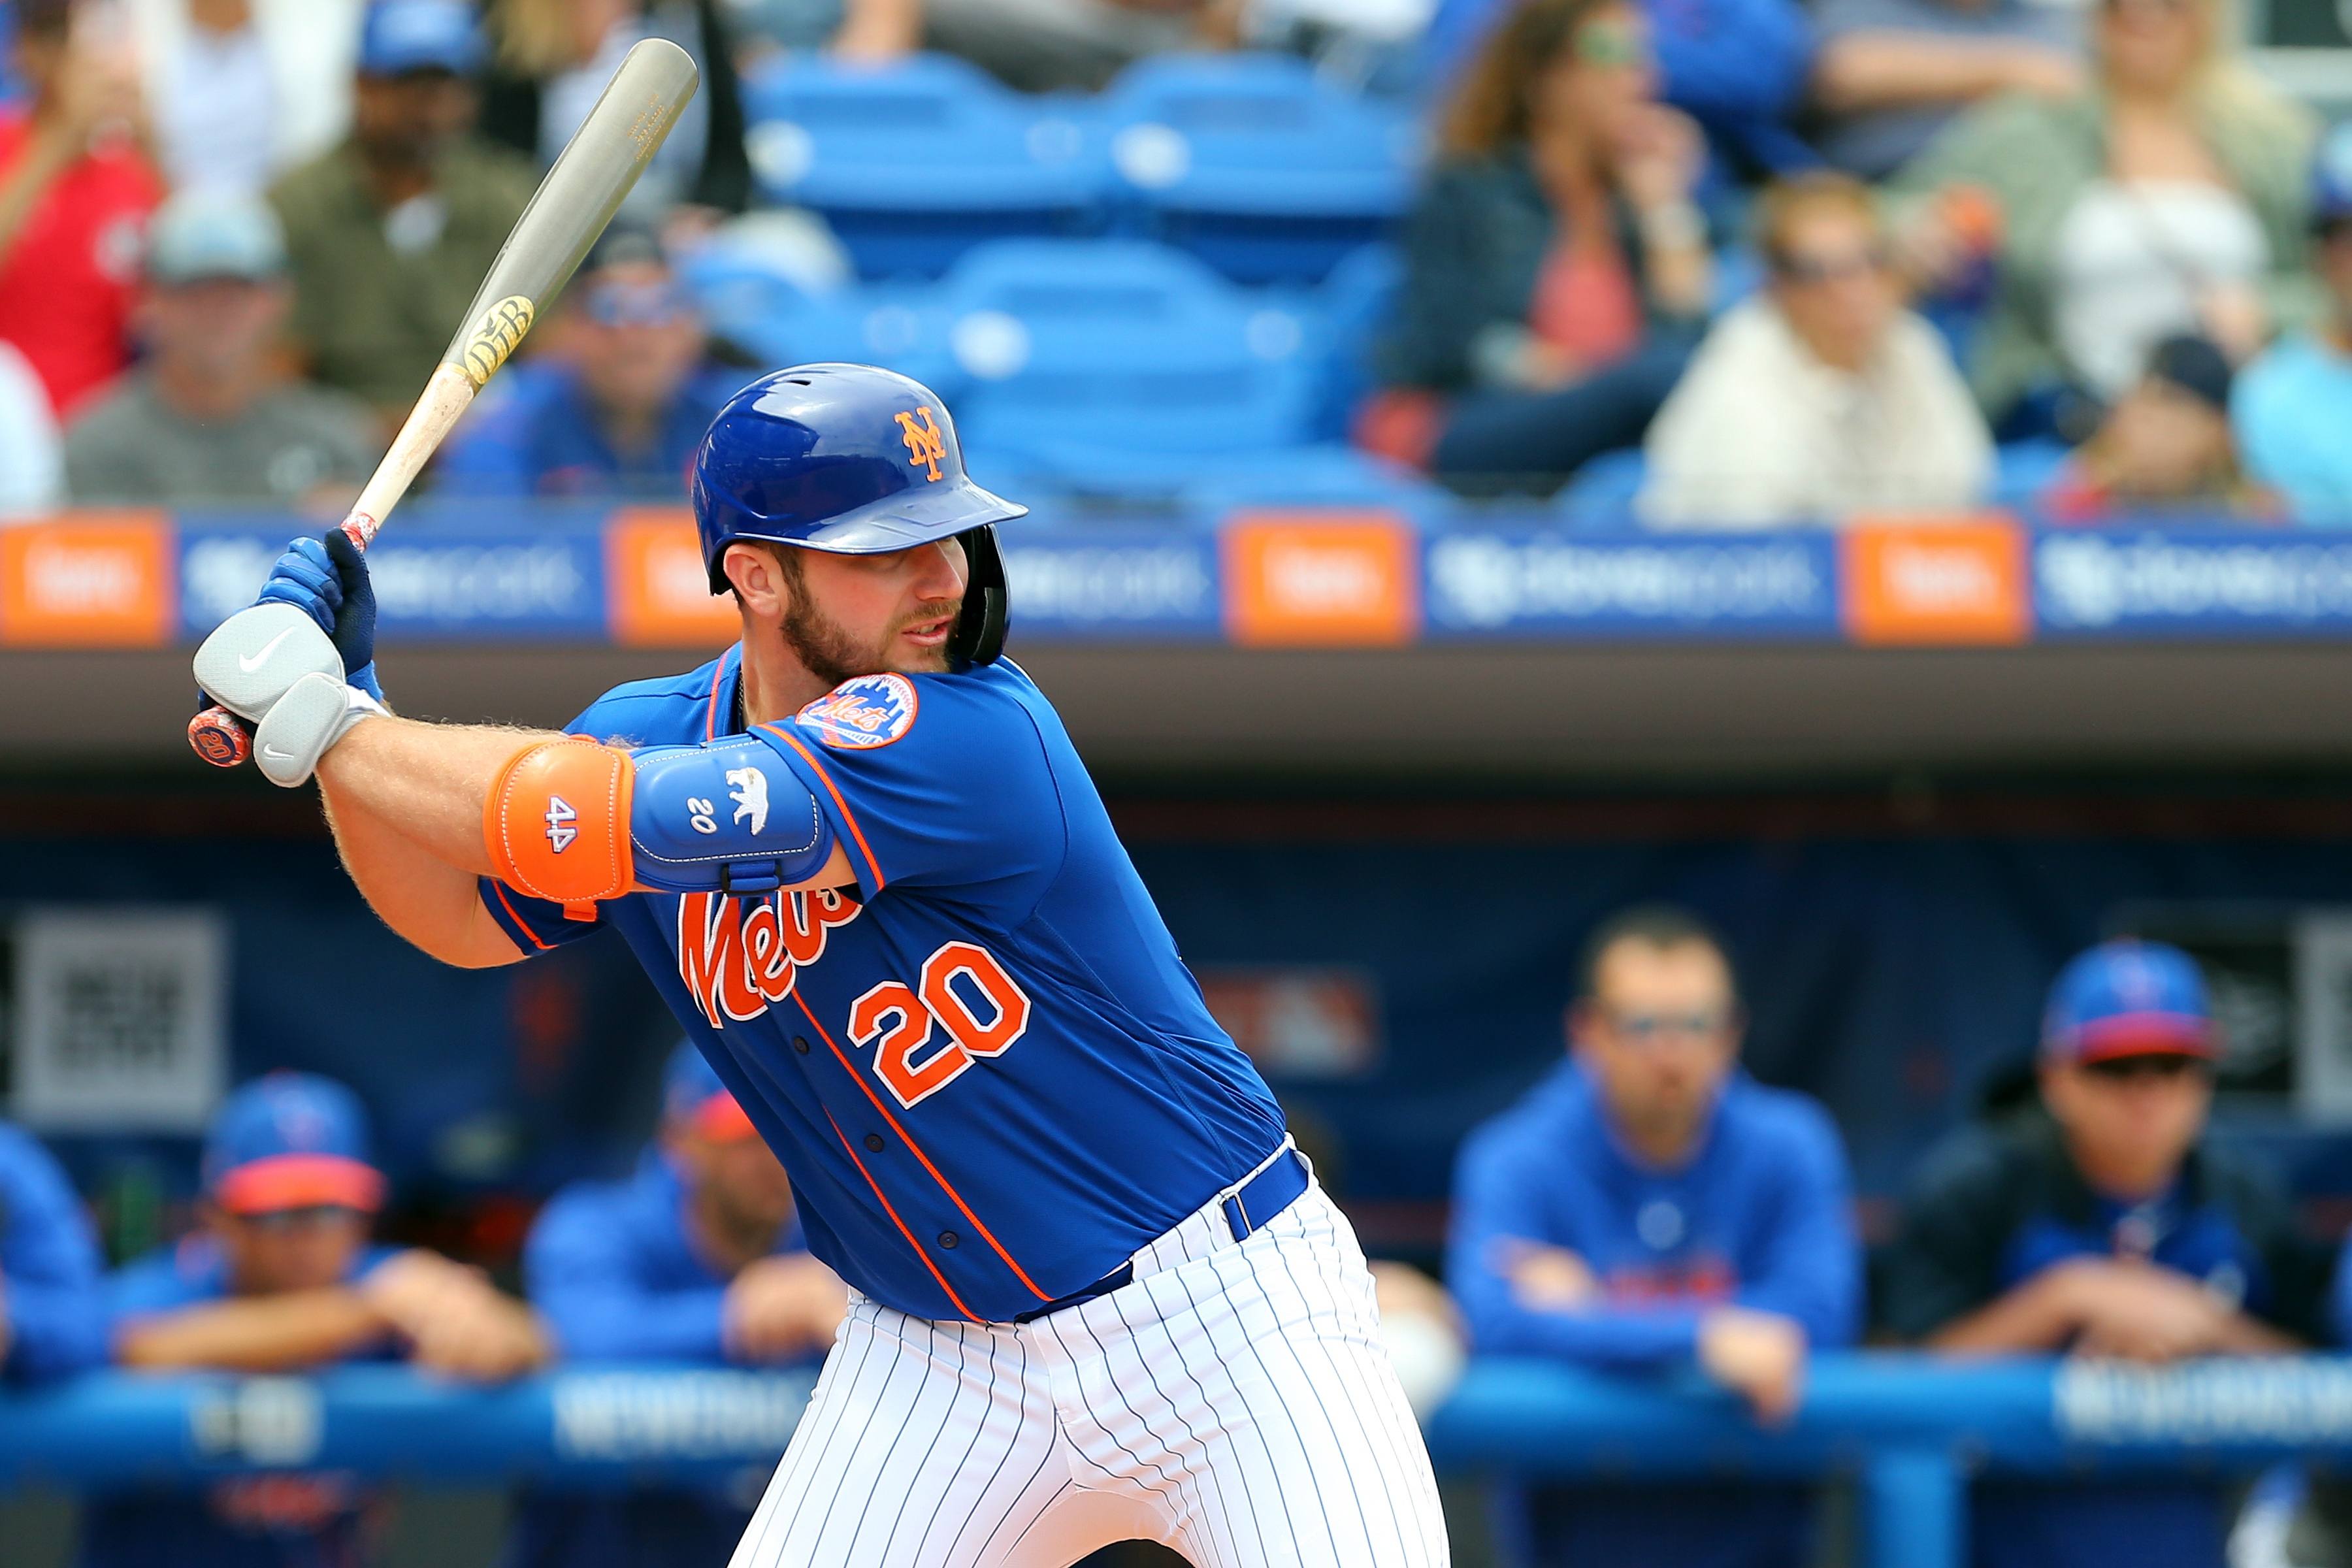 Pete Alonso #20 of the New York Mets in action against the Houston Astros during a spring training baseball game at Clover Park on March 8, 2020 in Port St. Lucie, Florida. The Mets defeated the Astros 3-1.